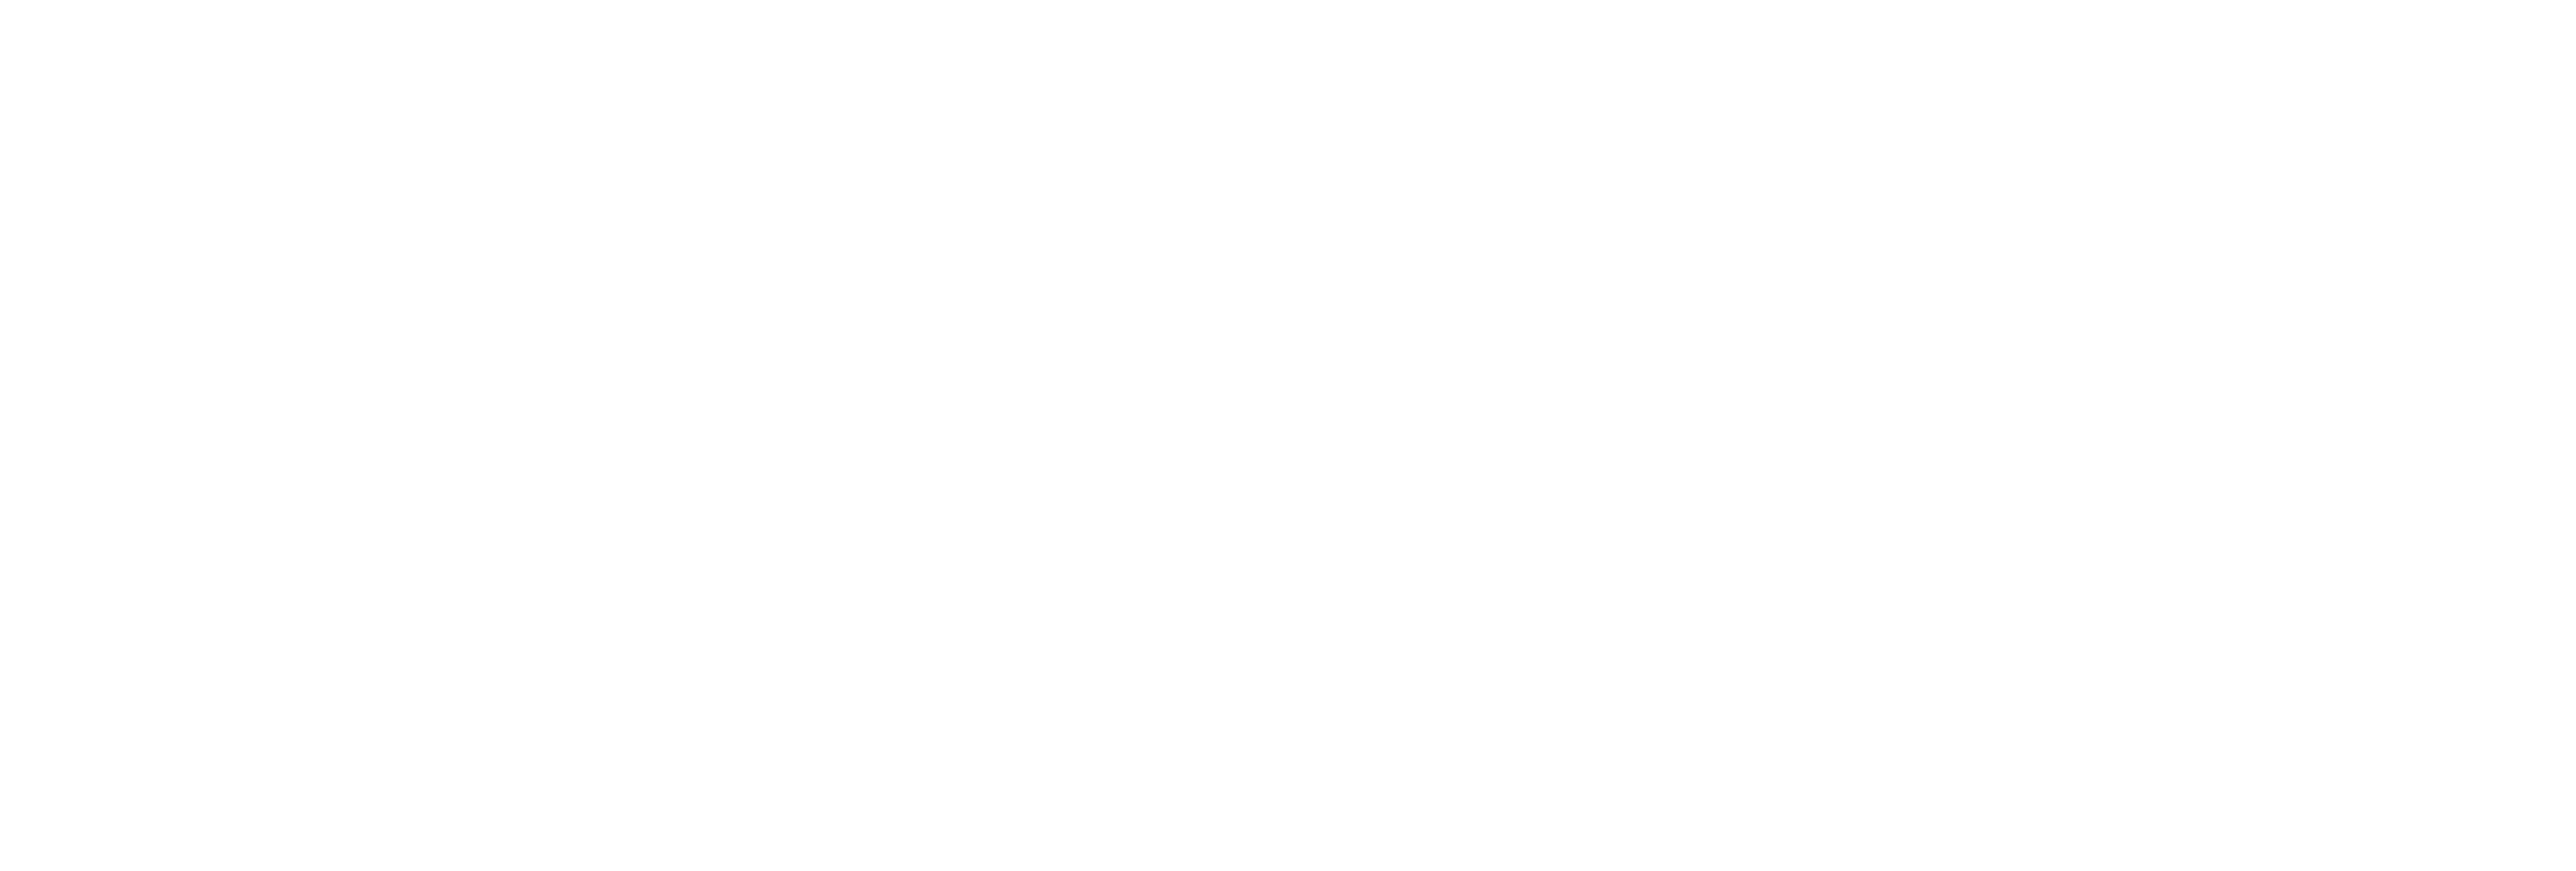 Red dead redemption 2 png. Cleaned transparent logo by